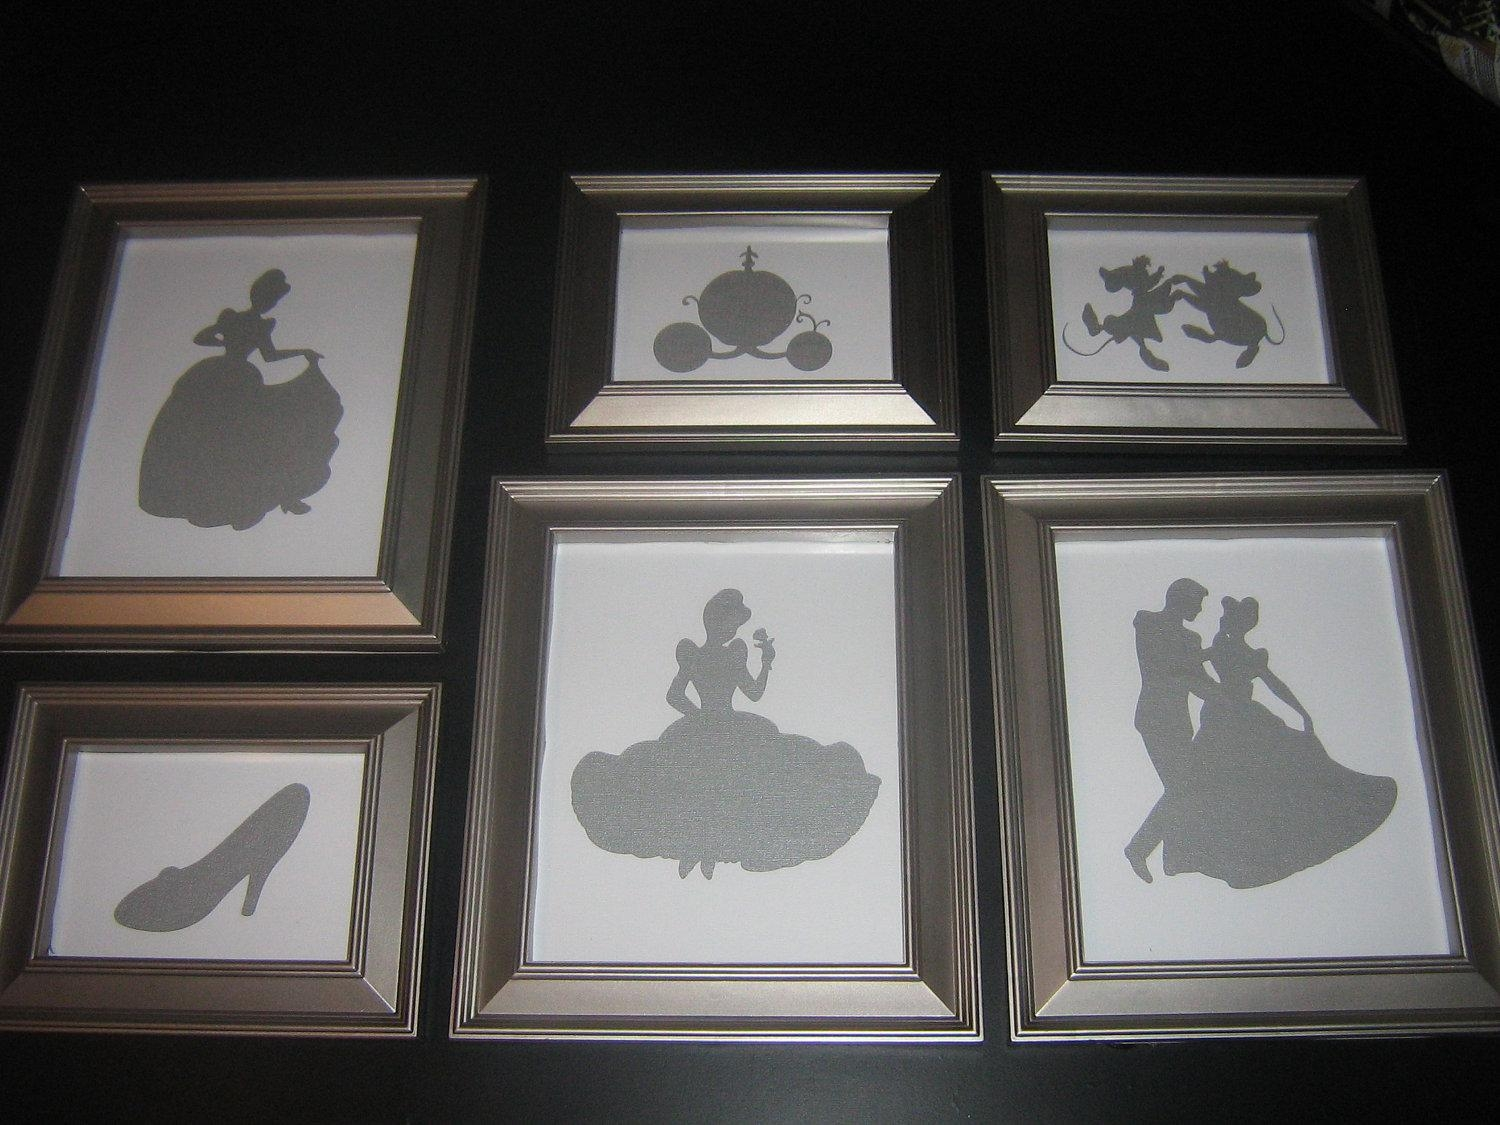 Framed Nursery Art Disney Princess Silhouette Cinderella Within Disney Princess Framed Wall Art (View 12 of 20)